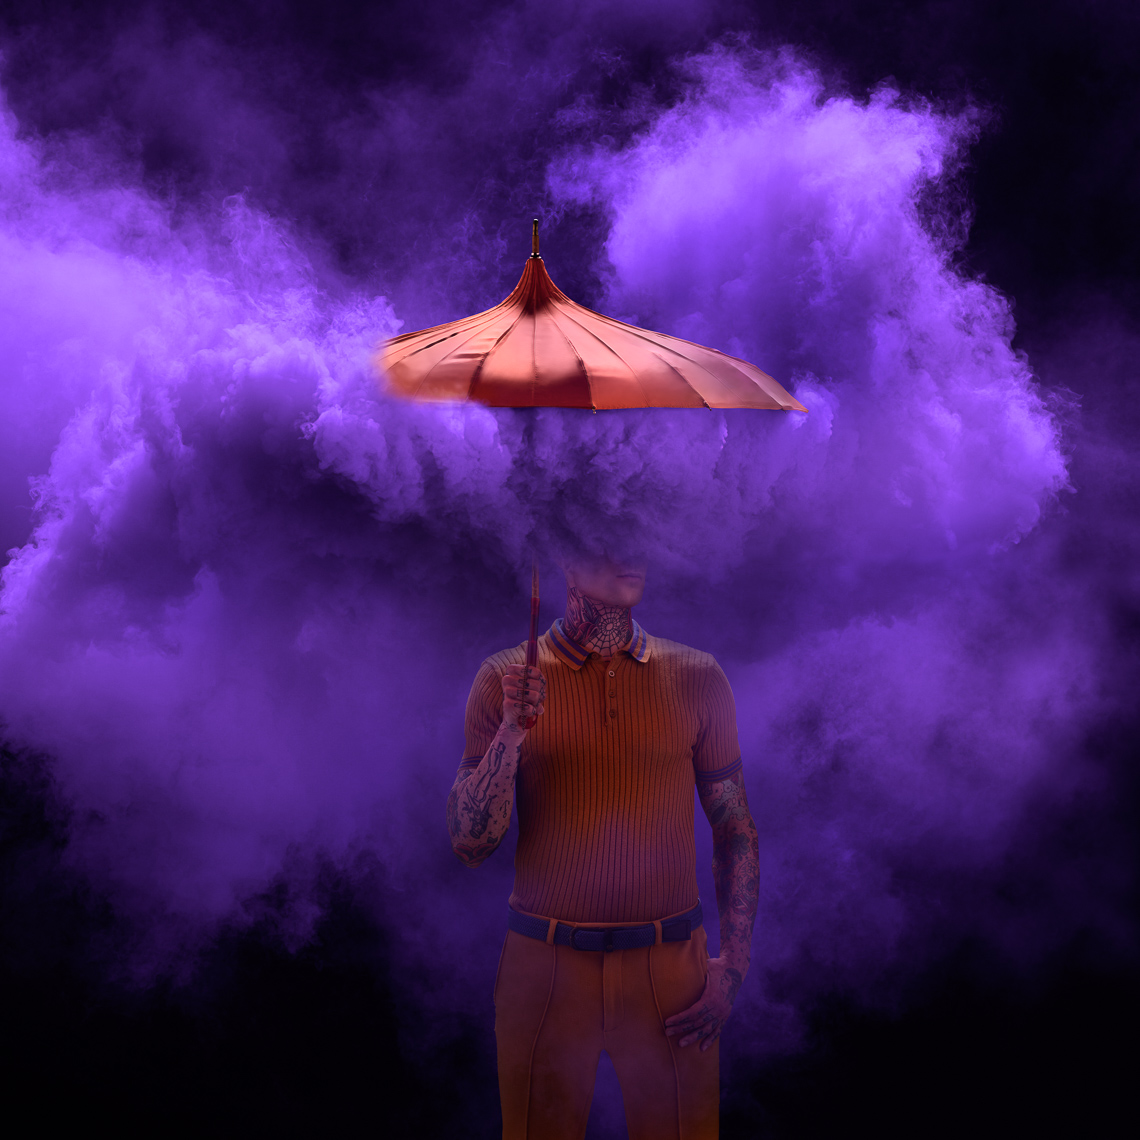 Tim_Tadder_Smoke_umbrellas_-4